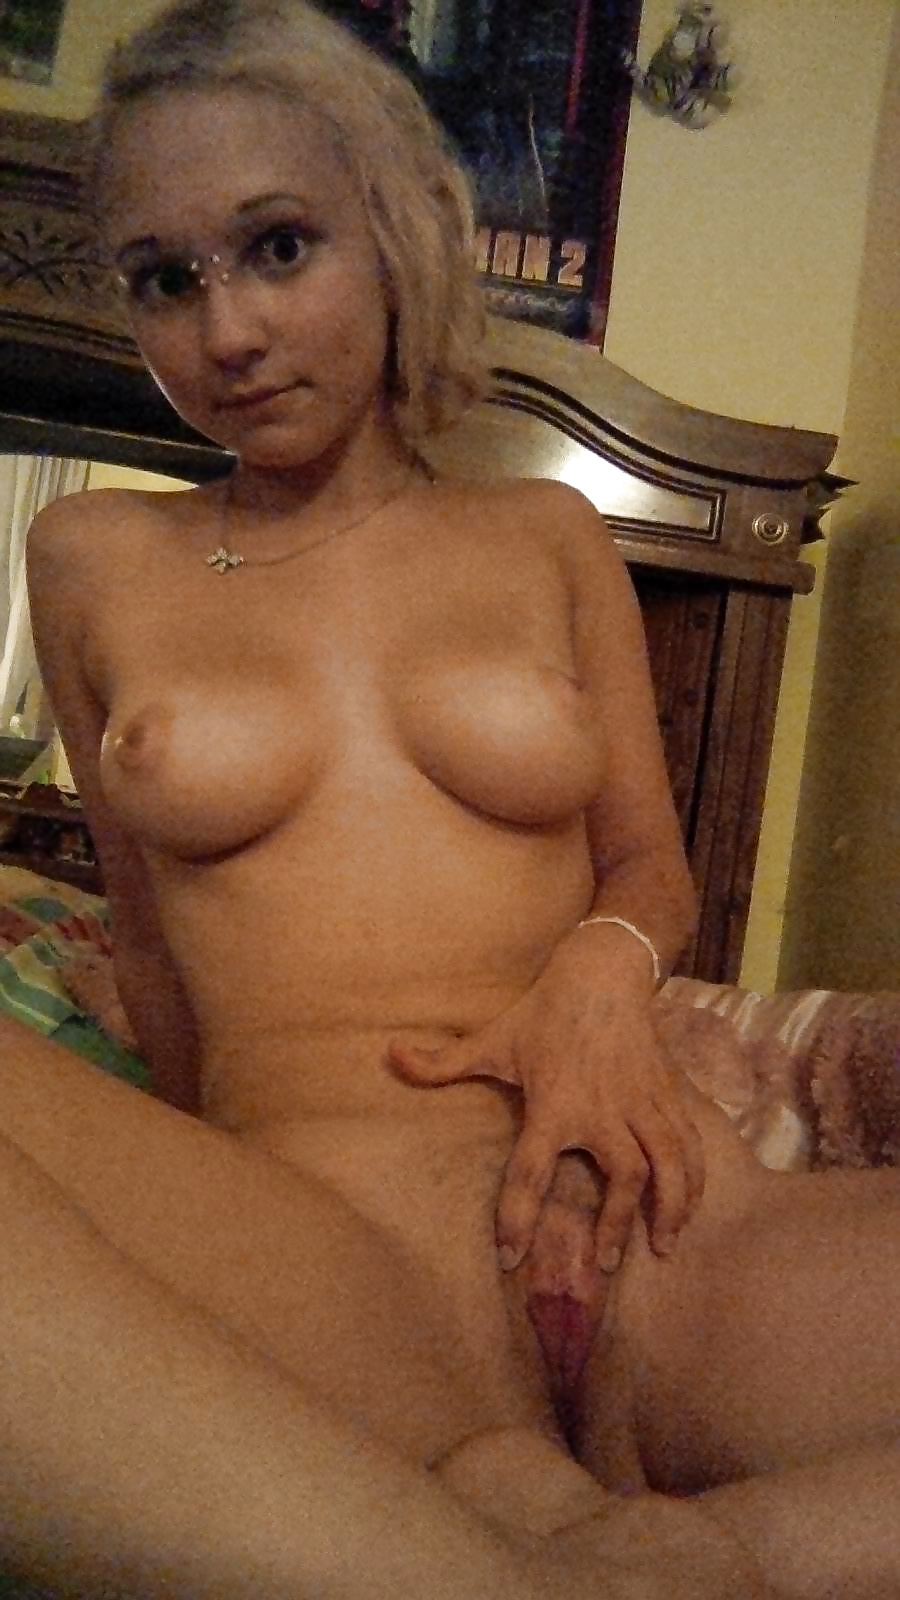 Cute young naked